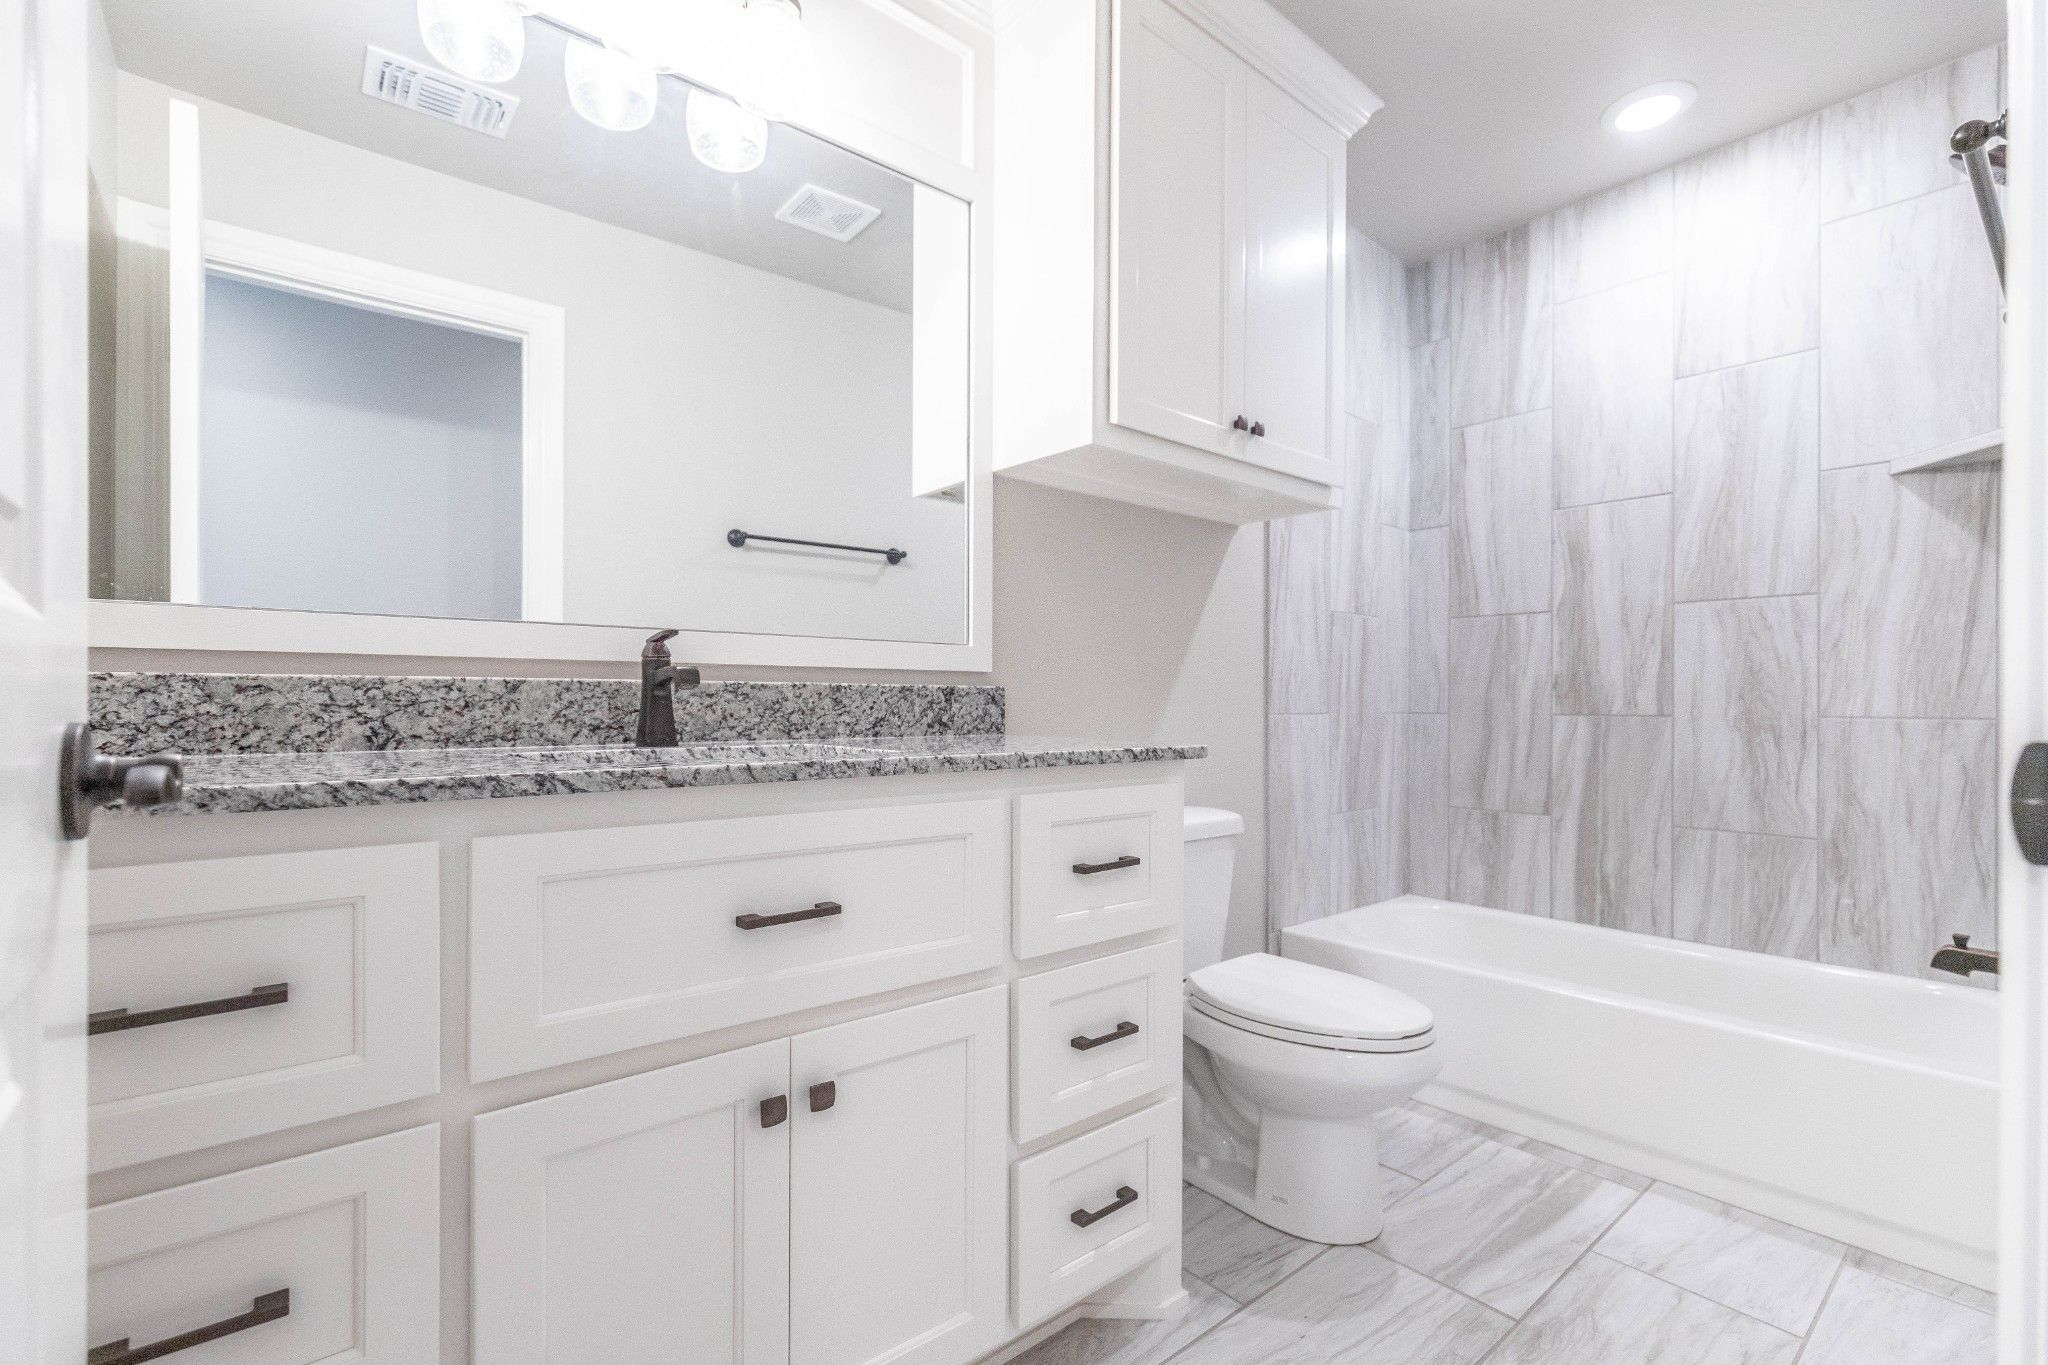 Bathroom featured in the Mallory By Homes By Taber in Oklahoma City, OK